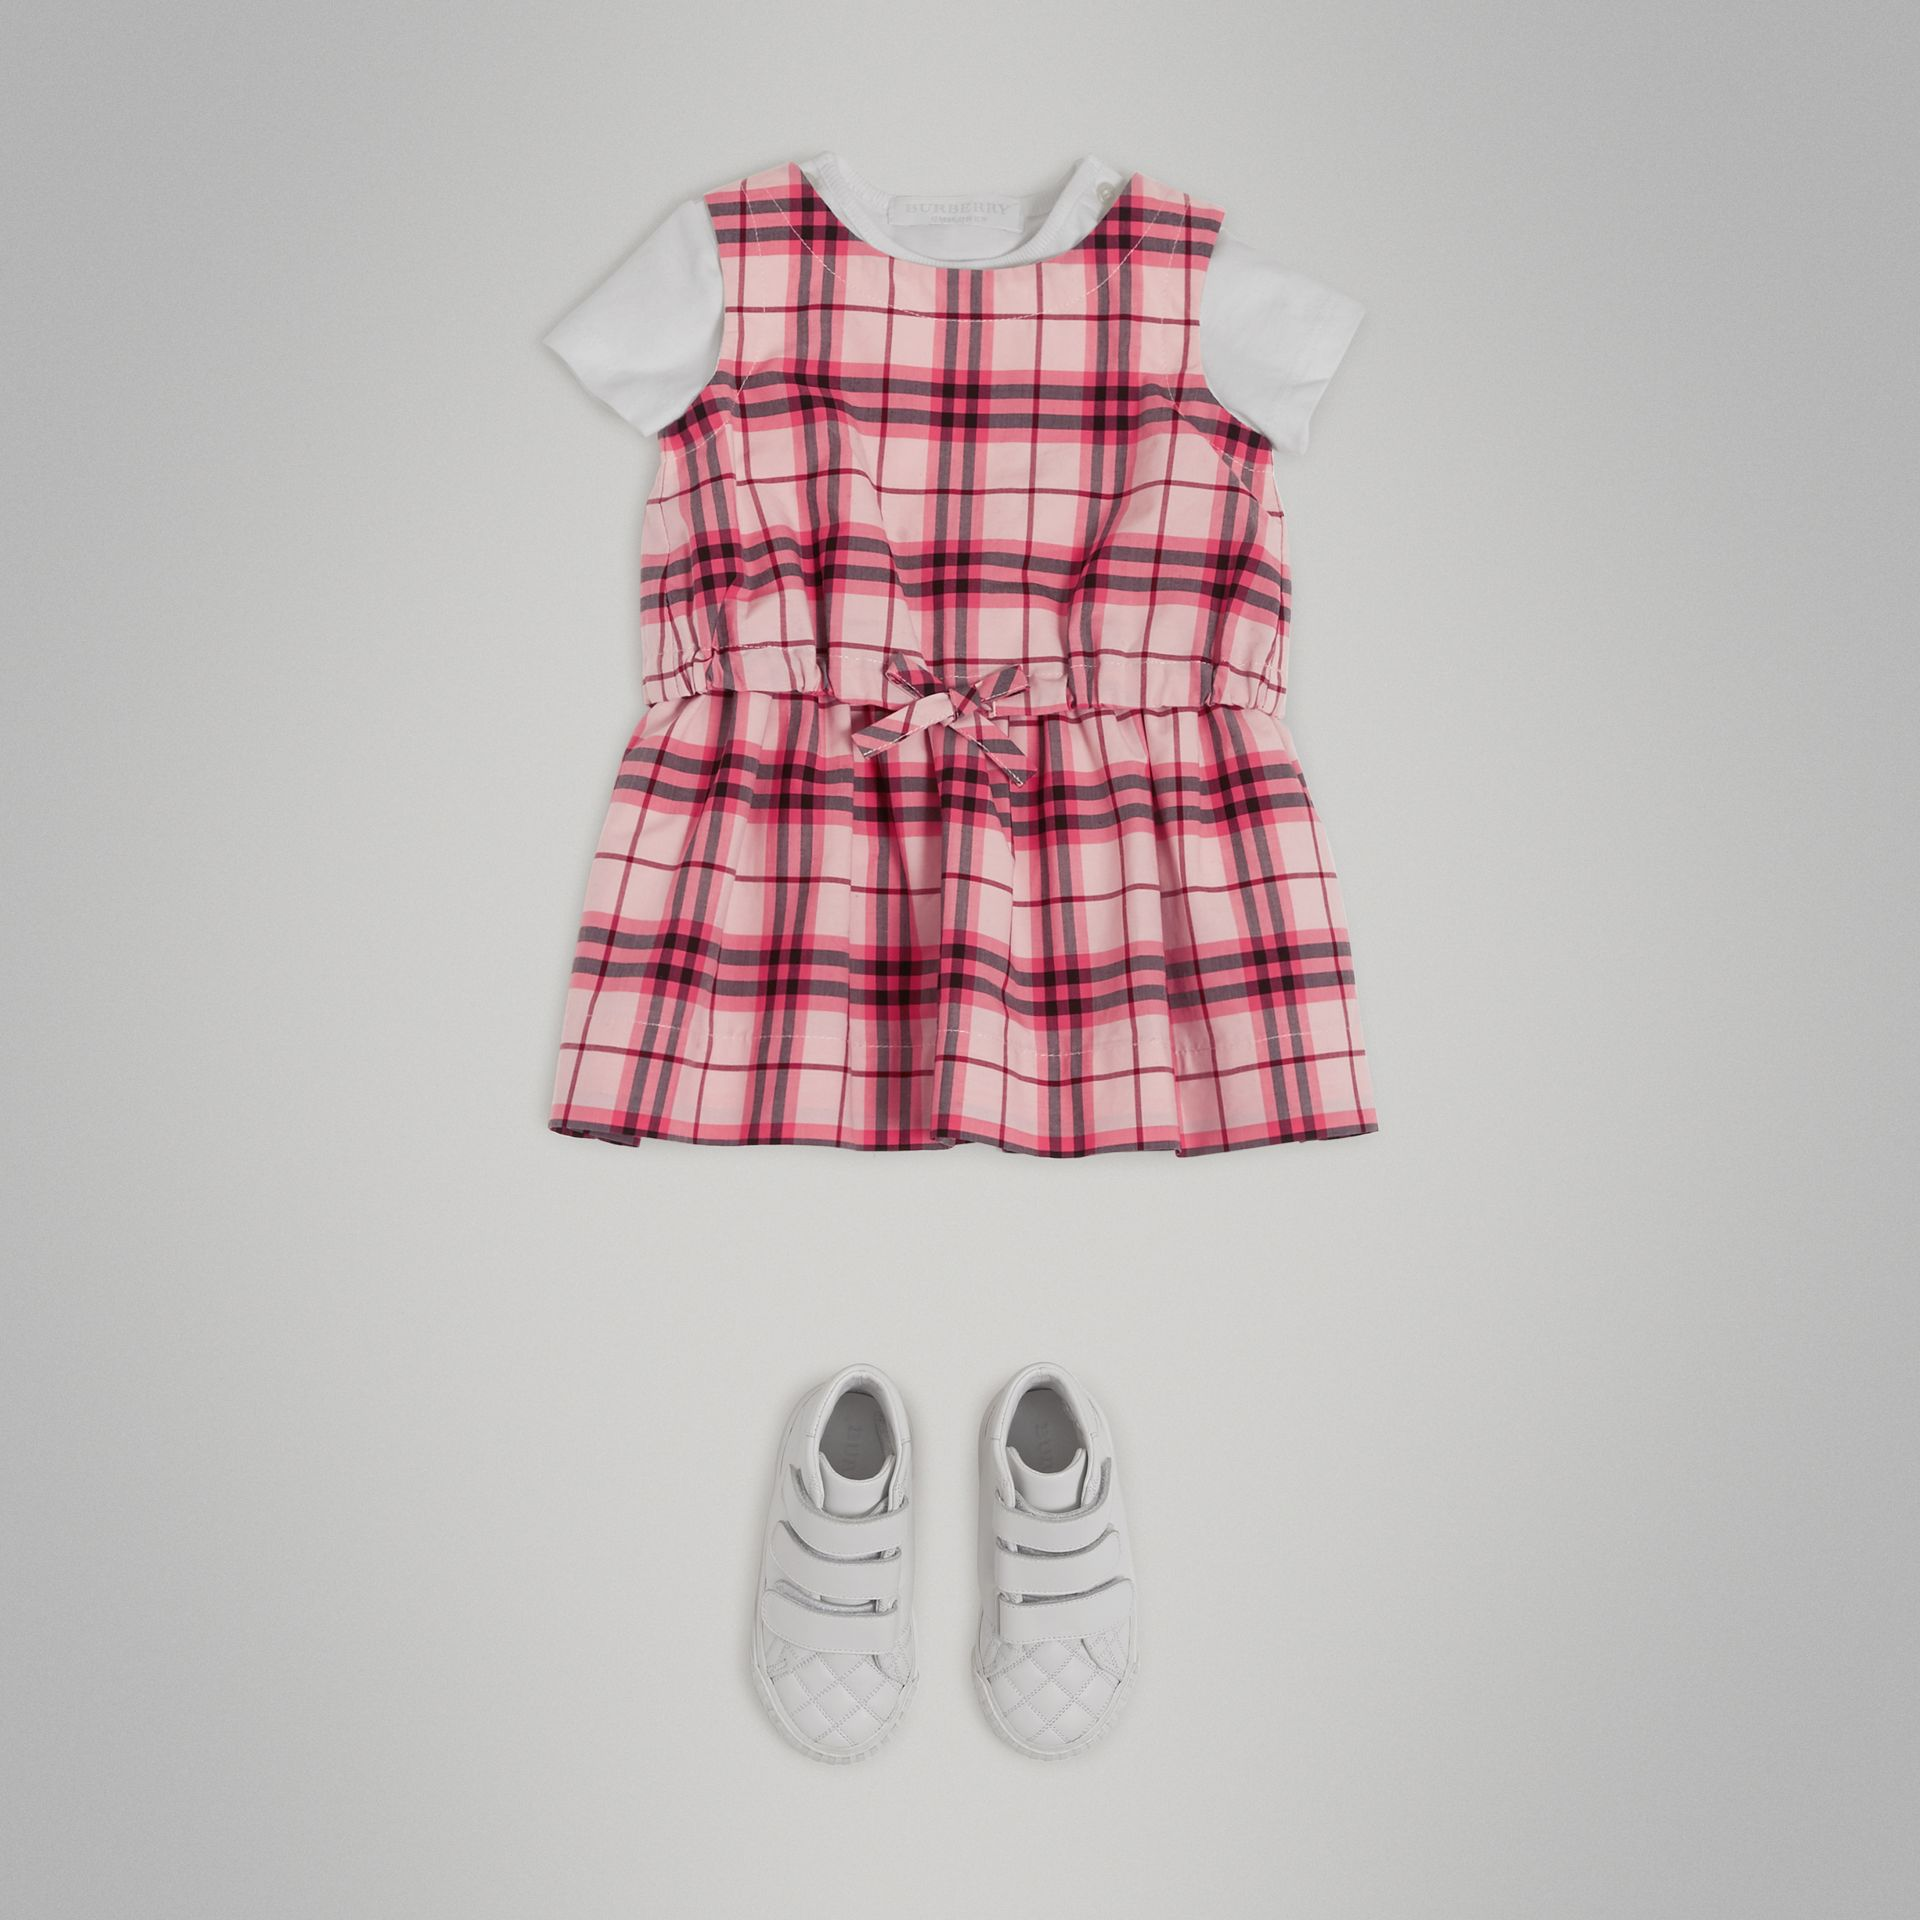 Gathered Check Cotton Dress in Bright Rose - Children | Burberry United Kingdom - gallery image 2